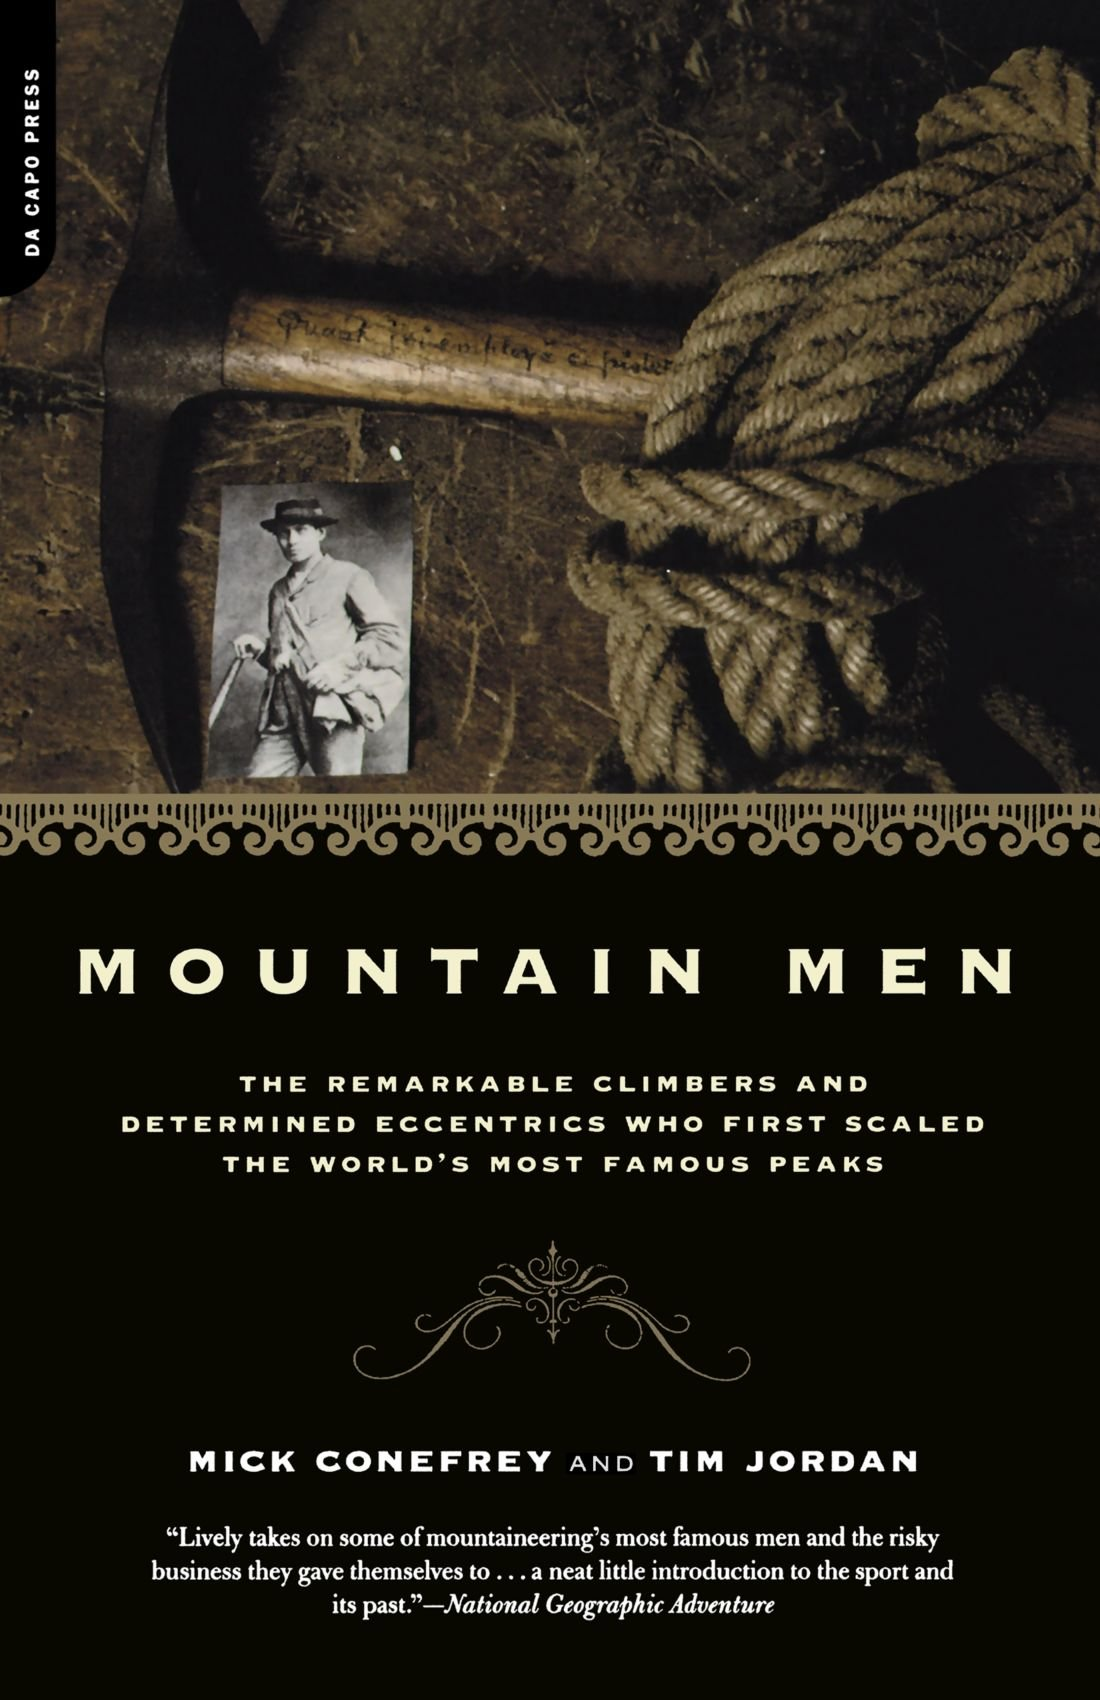 Mountain Men: The Remarkable Climbers And Determined Eccentrics Who First Scaled The World's Most Famous Peaks